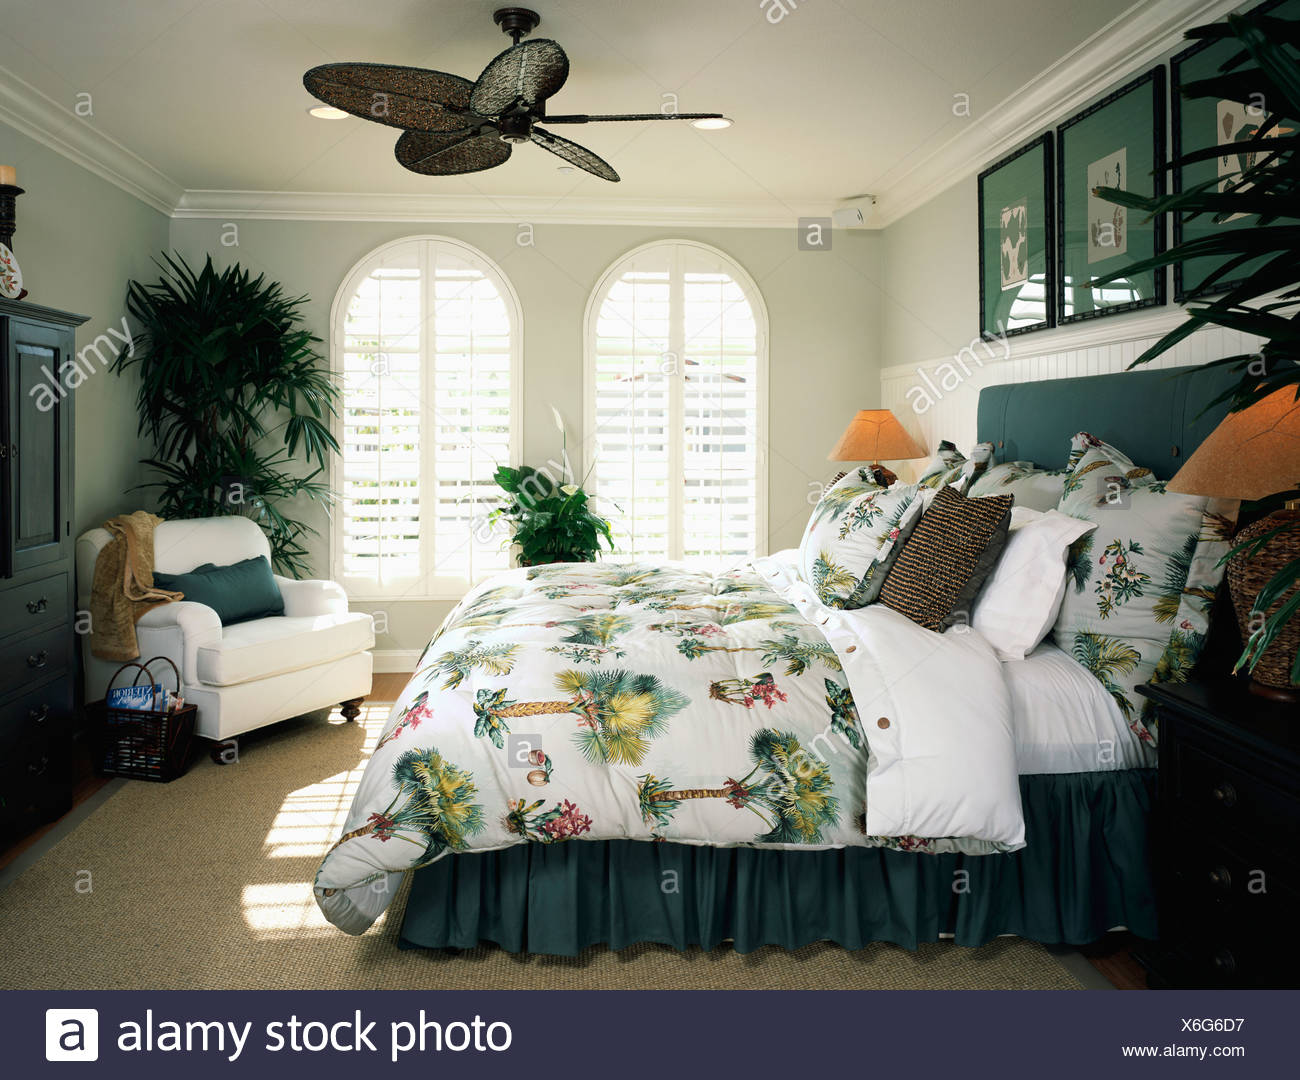 Cozy Beach Style Bedroom with Ceiling Fan Stock Photo: 279410131 - Alamy